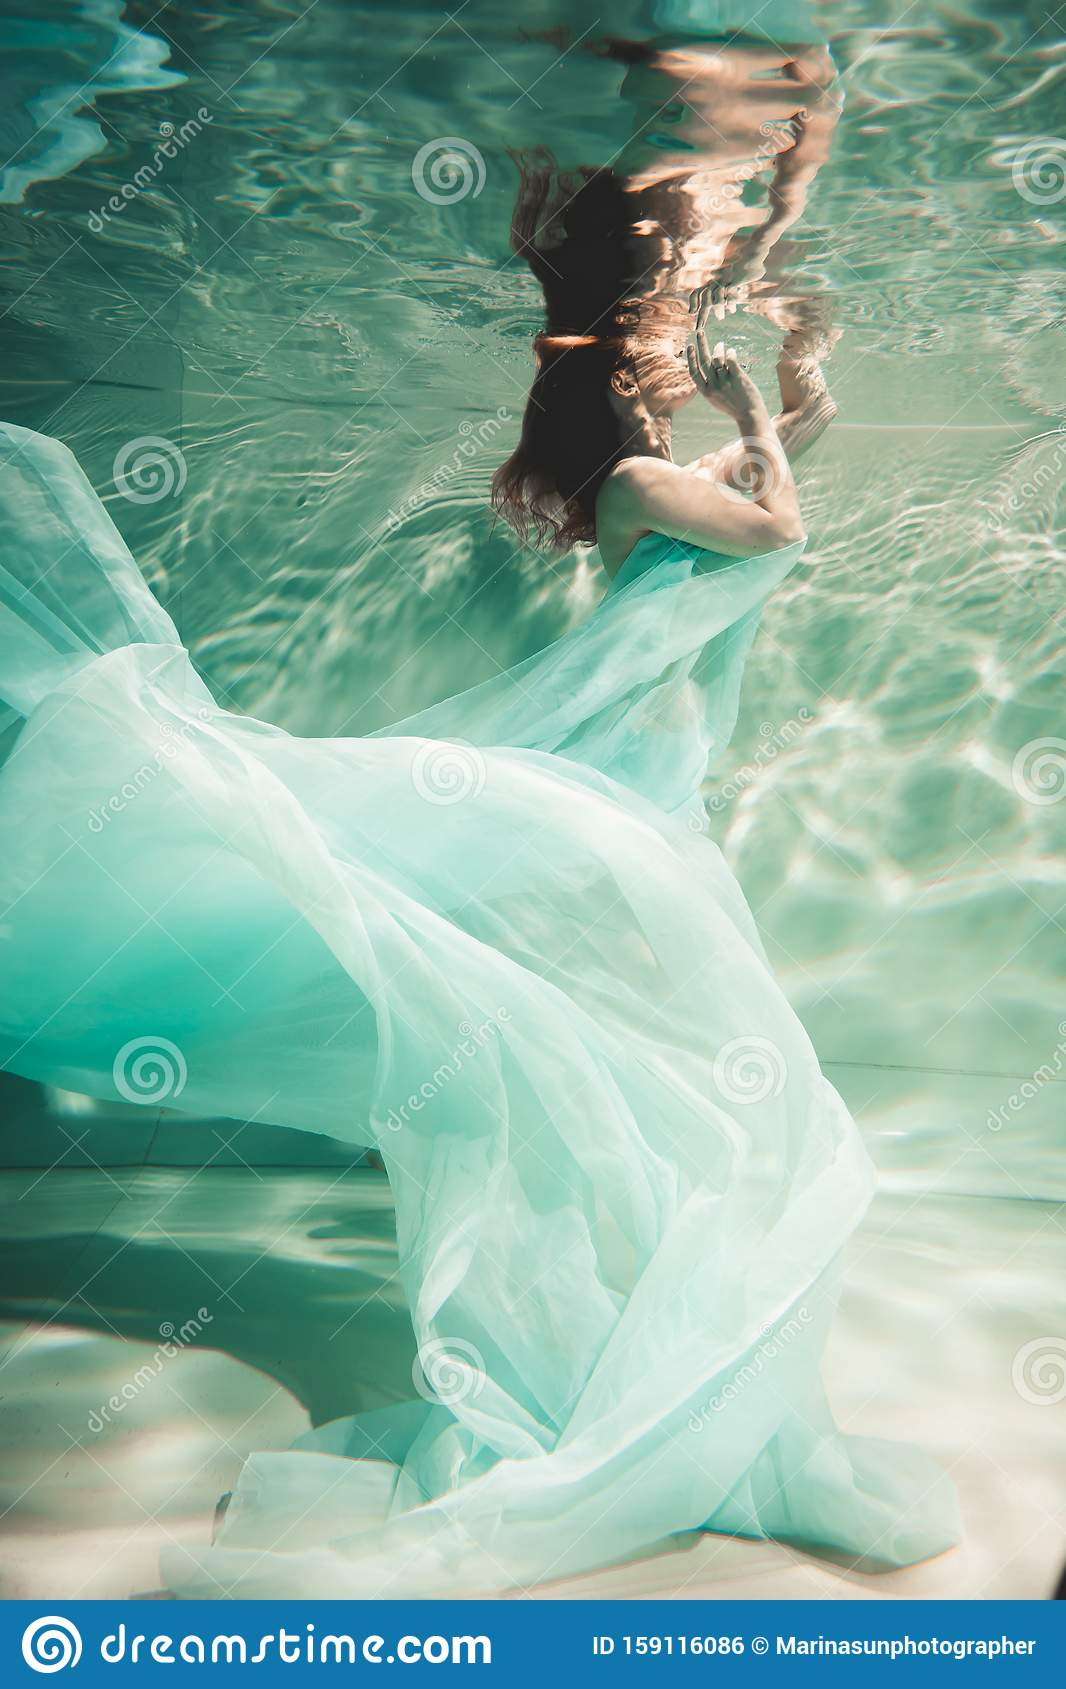 Young Woman Swimming Alone With Fashion Fabric Underwater